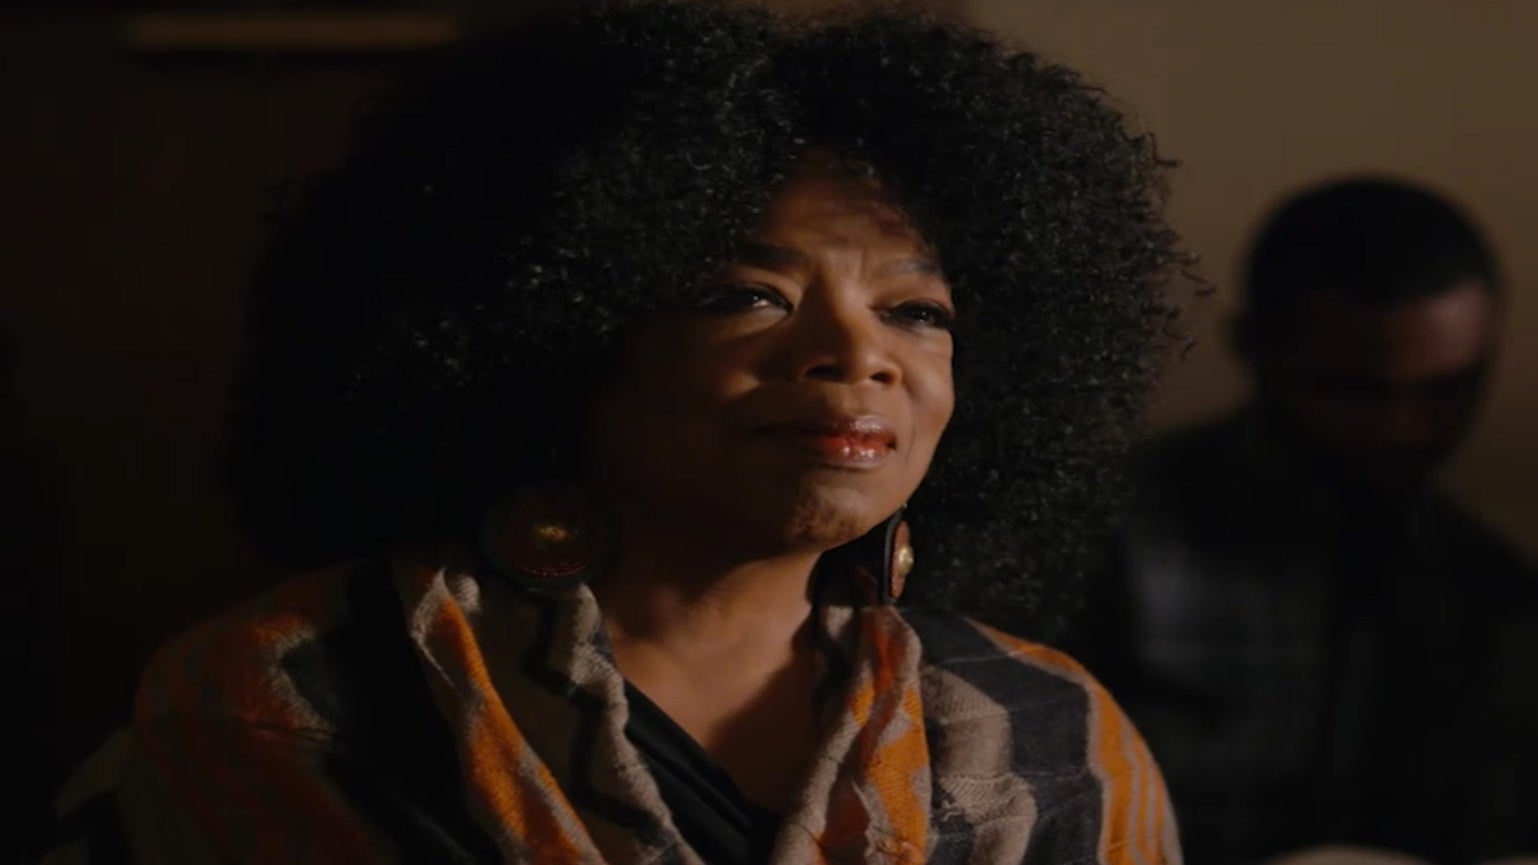 Oprah Winfrey on Her New TV Drama, 'Greenleaf,' and Maya Angelou Inspiring Her Character